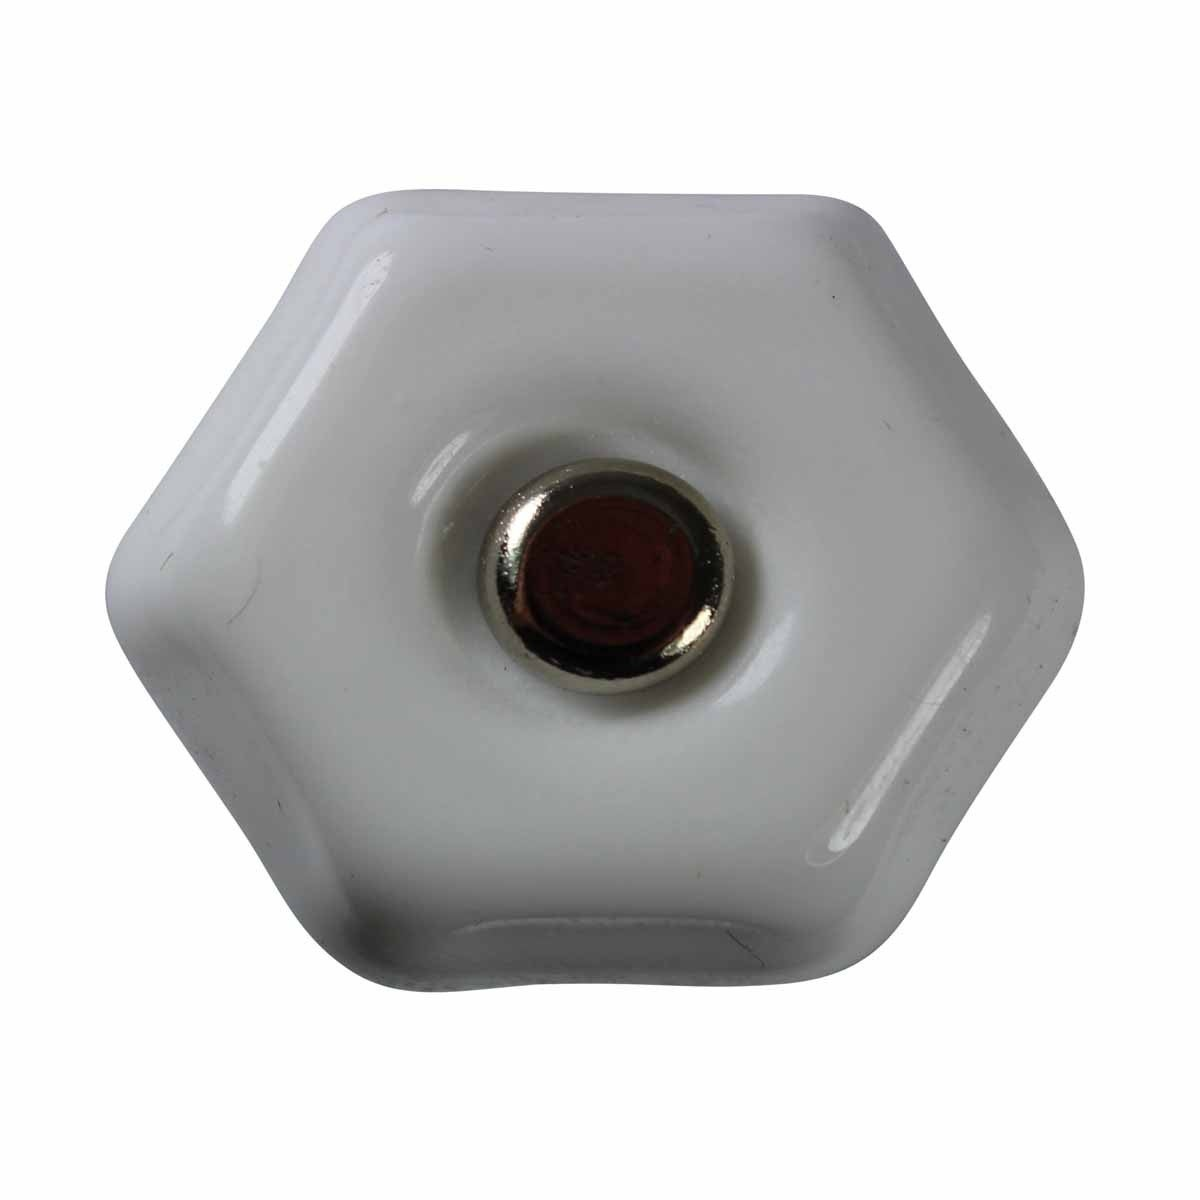 Shop Milk Glass Cabinet Knobs And Pulls 1 1/4 Inch Dia W/ Chrome Screw   On  Sale   Free Shipping On Orders Over $45   Overstock.com   13945294